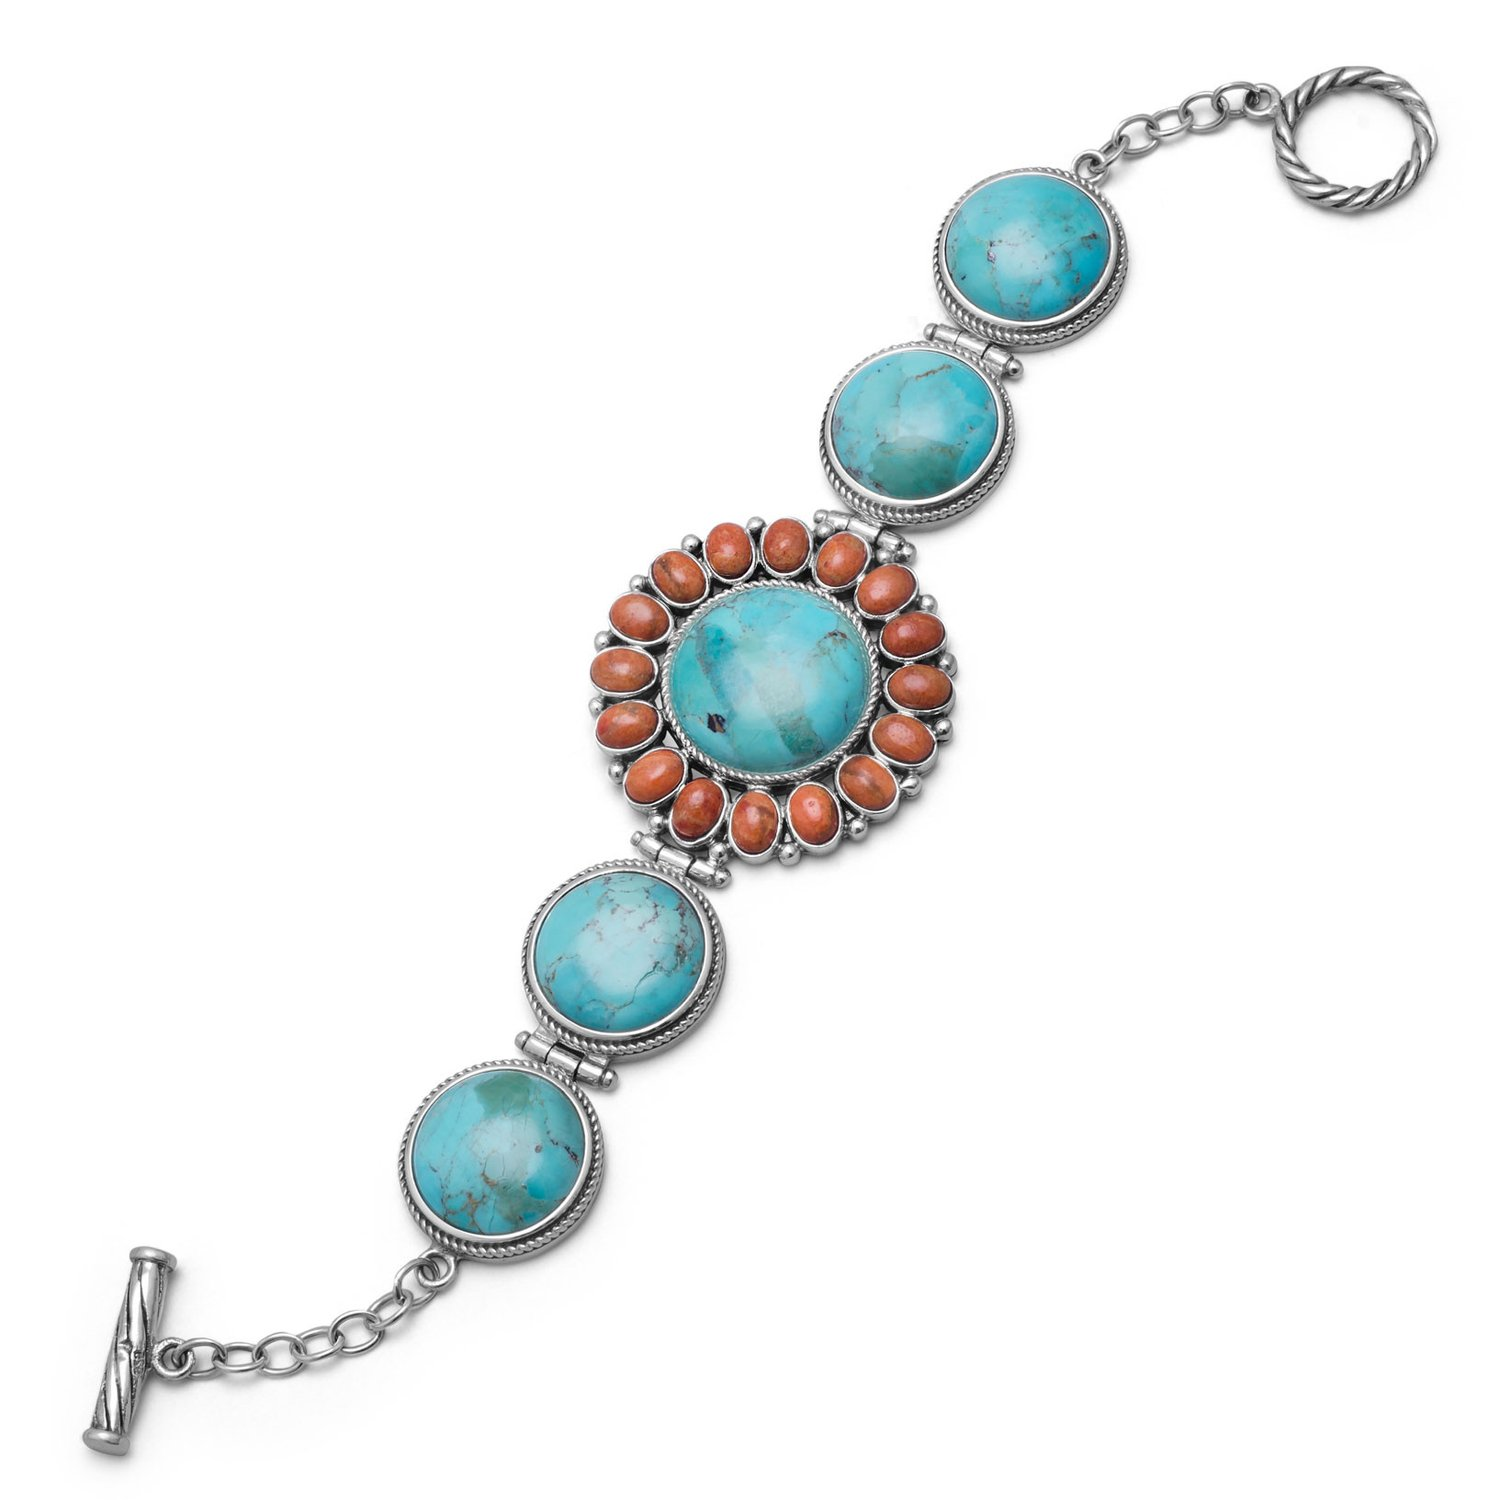 7.5″ Reconstituted Turquoise and Coral Sunburst Toggle Bracelet